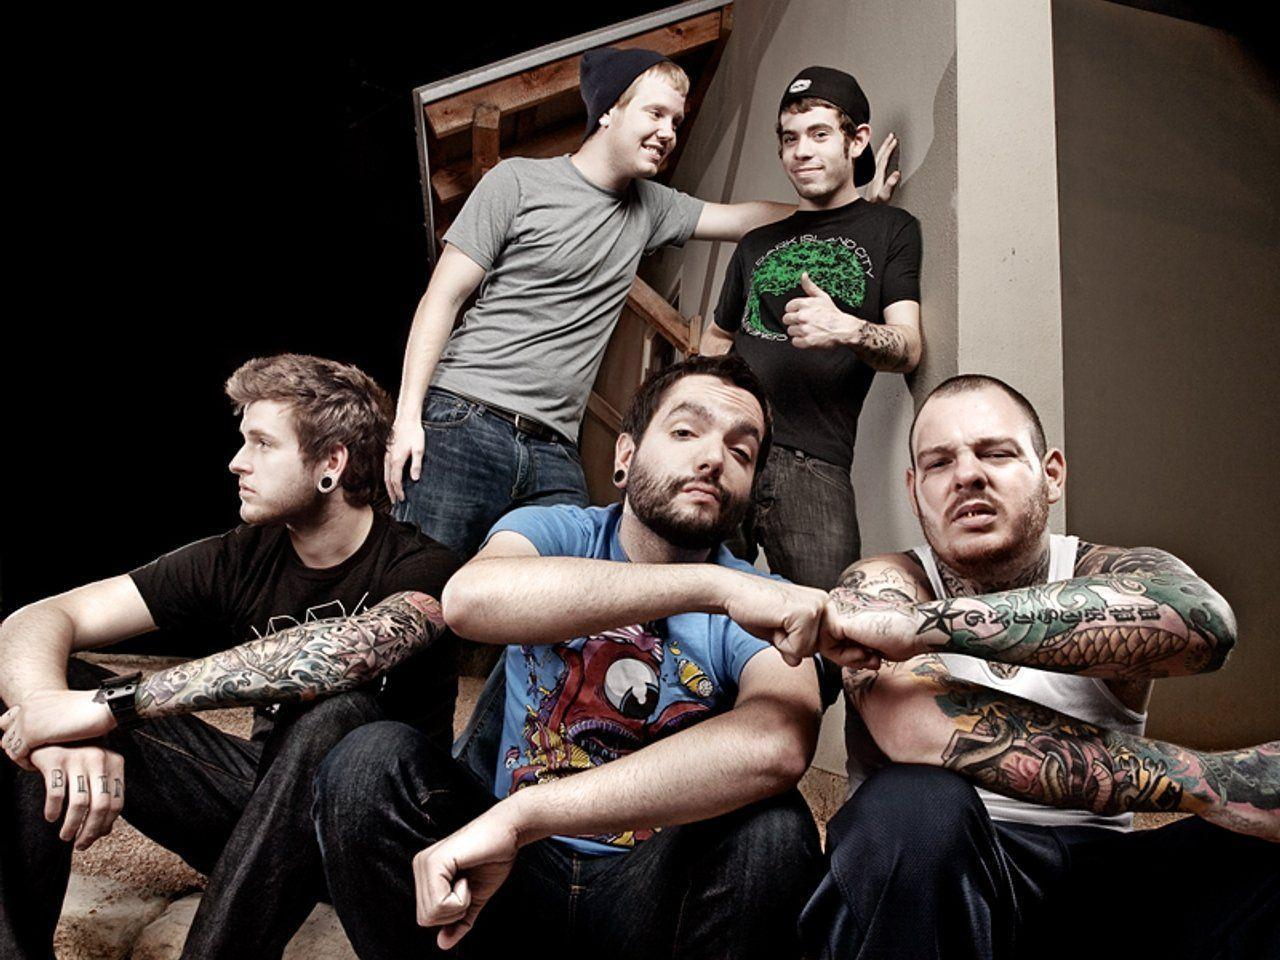 Wallpapers For > A Day To Remember Live Wallpapers